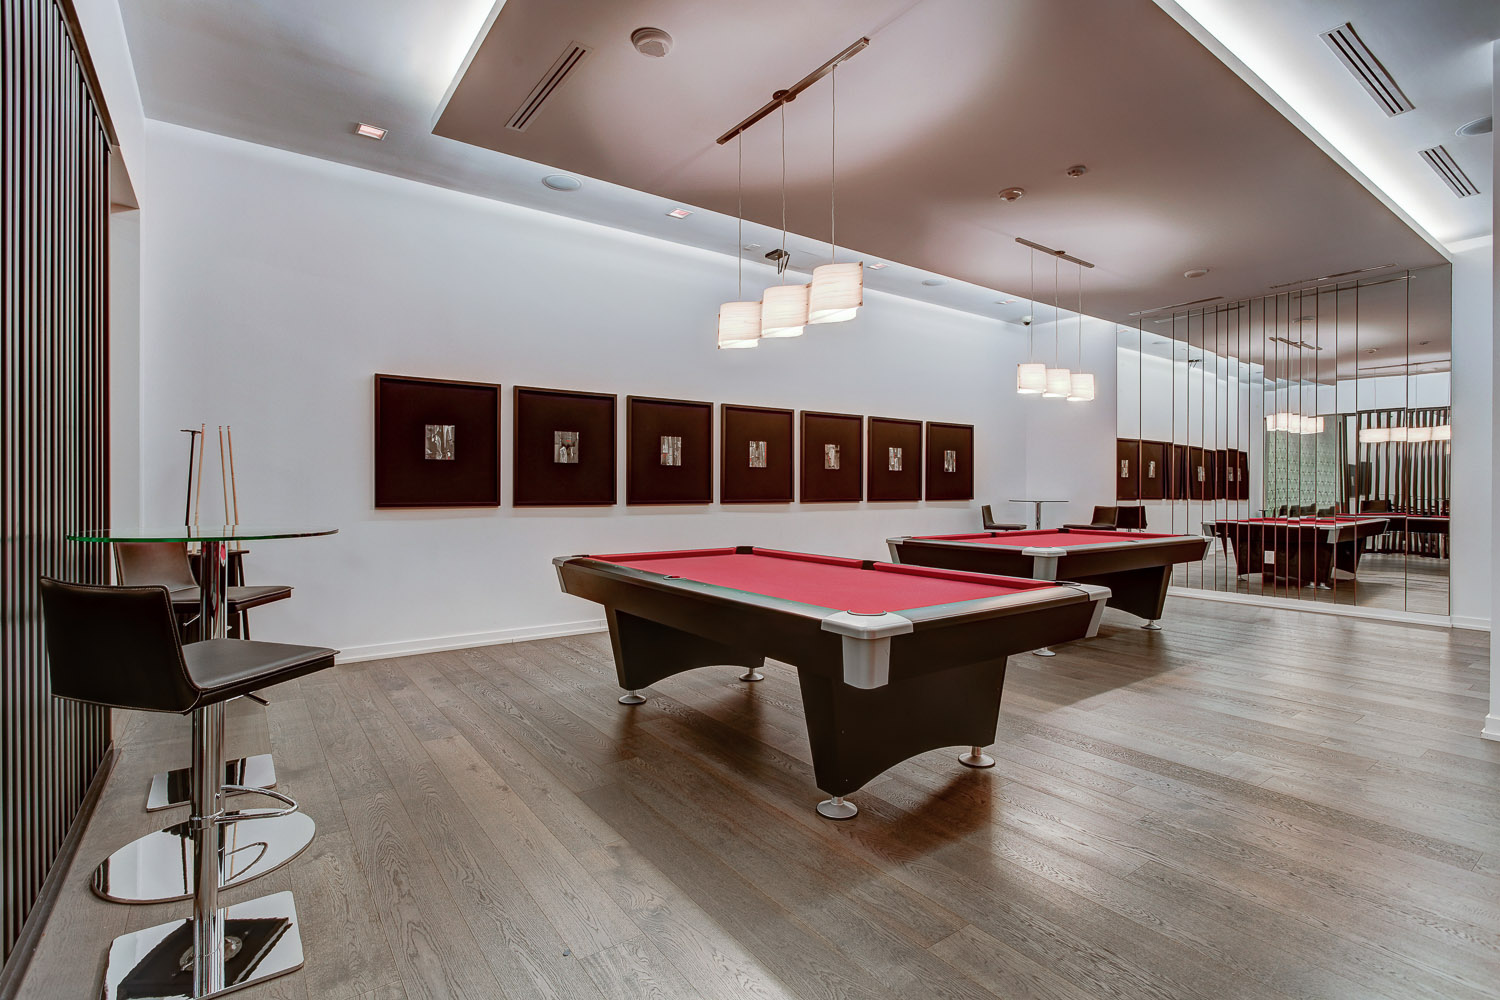 25 Billiard room